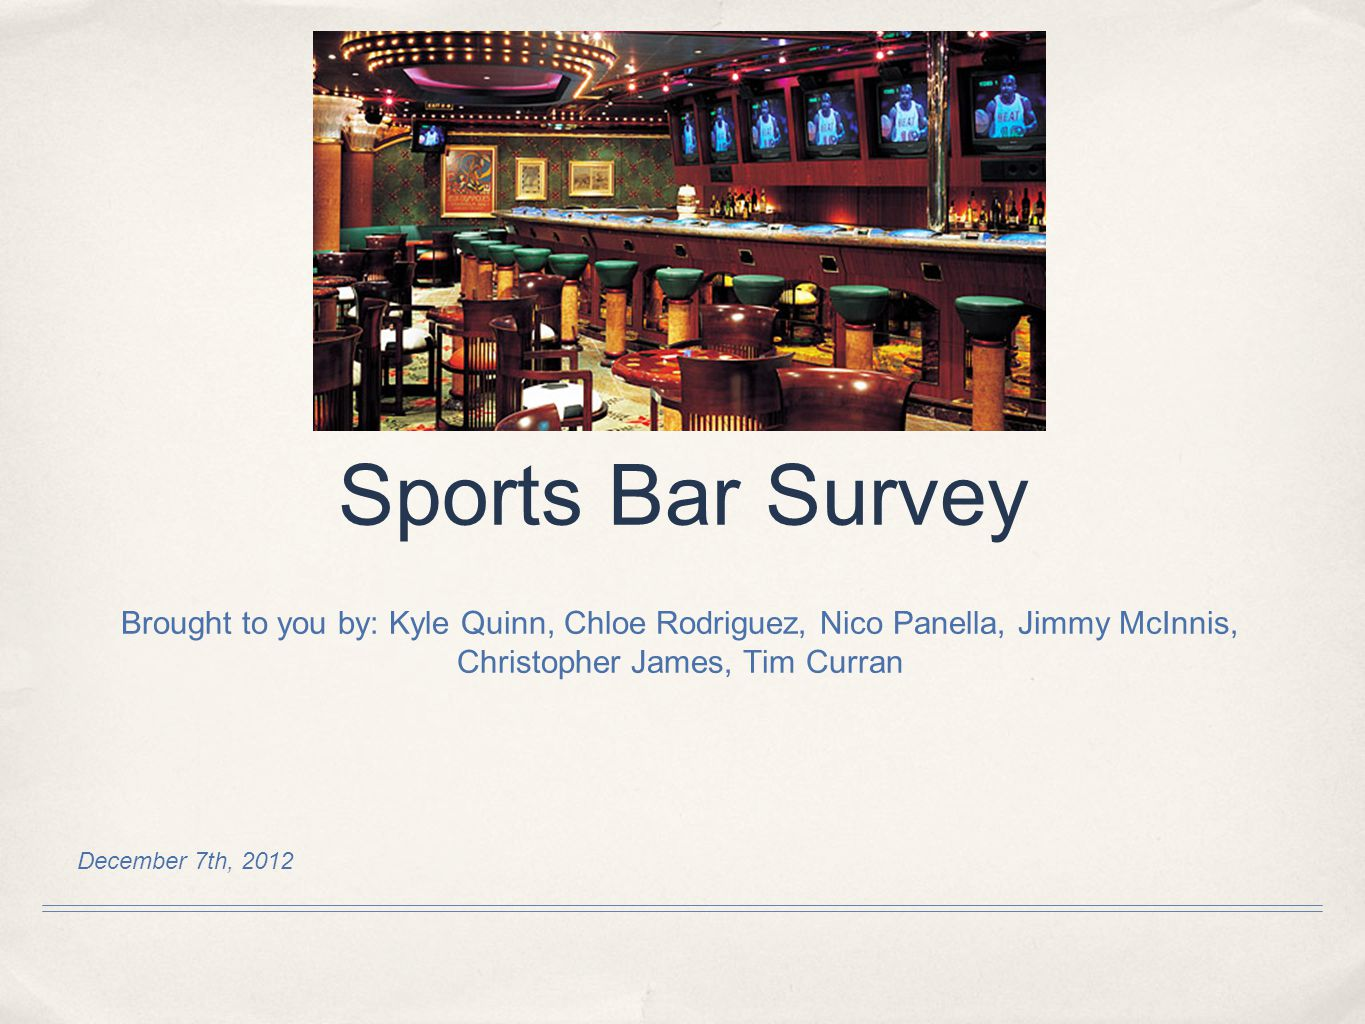 December 7th, 2012 Sports Bar Survey Brought to you by: Kyle Quinn, Chloe Rodriguez, Nico Panella, Jimmy McInnis, Christopher James, Tim Curran